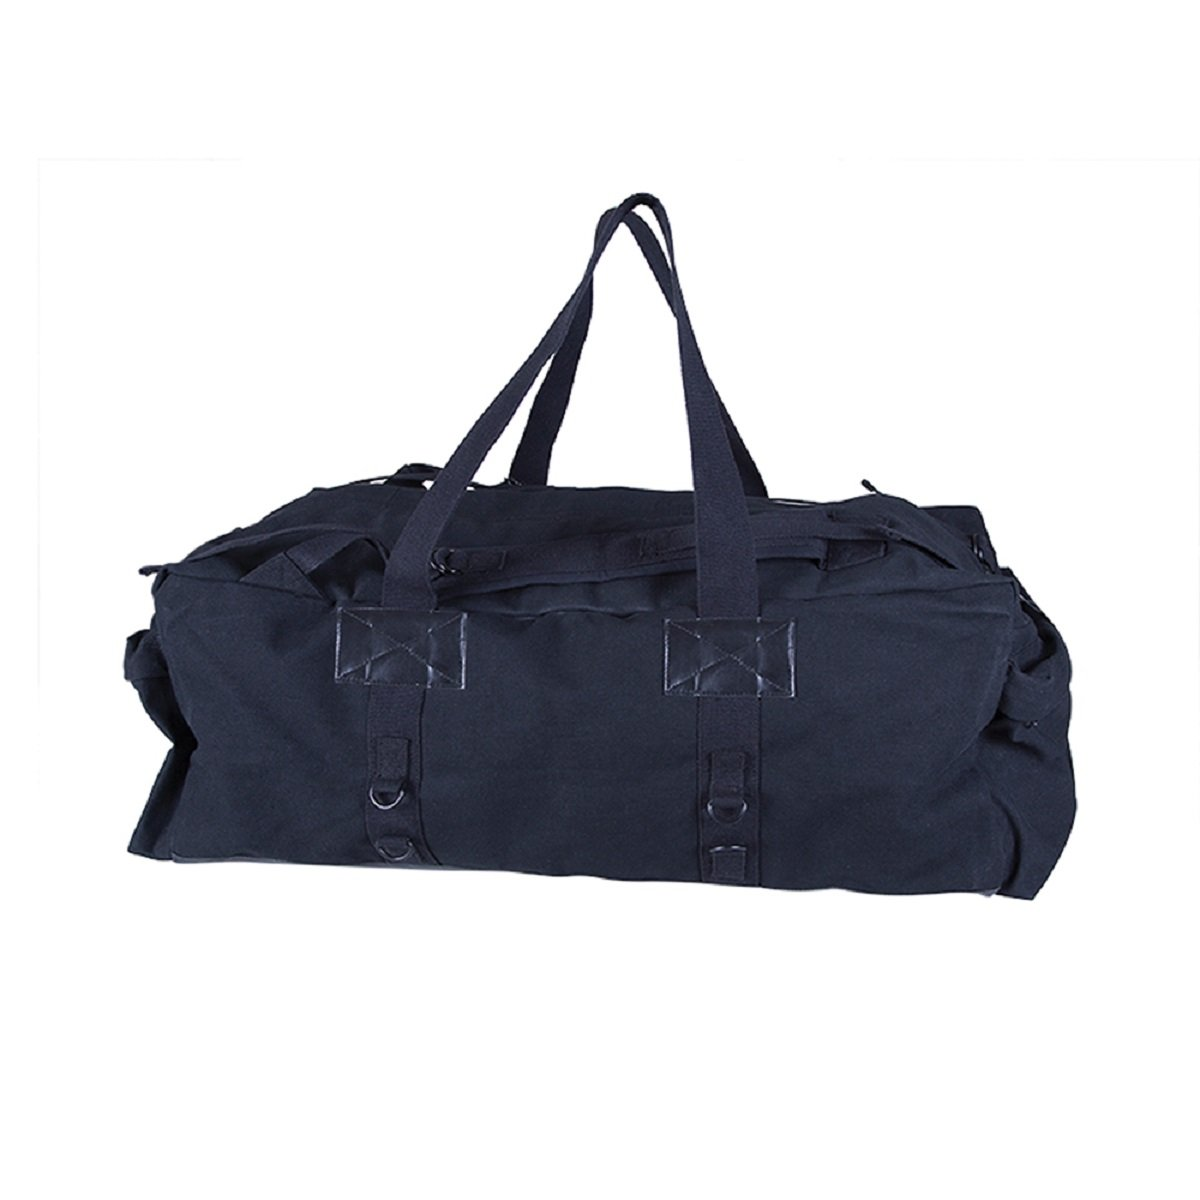 CANVAS TACTICAL DUFFLE BAG - BLACK - 34 IN X 15 IN X 12 IN, Case of 6 by DollarItemDirect